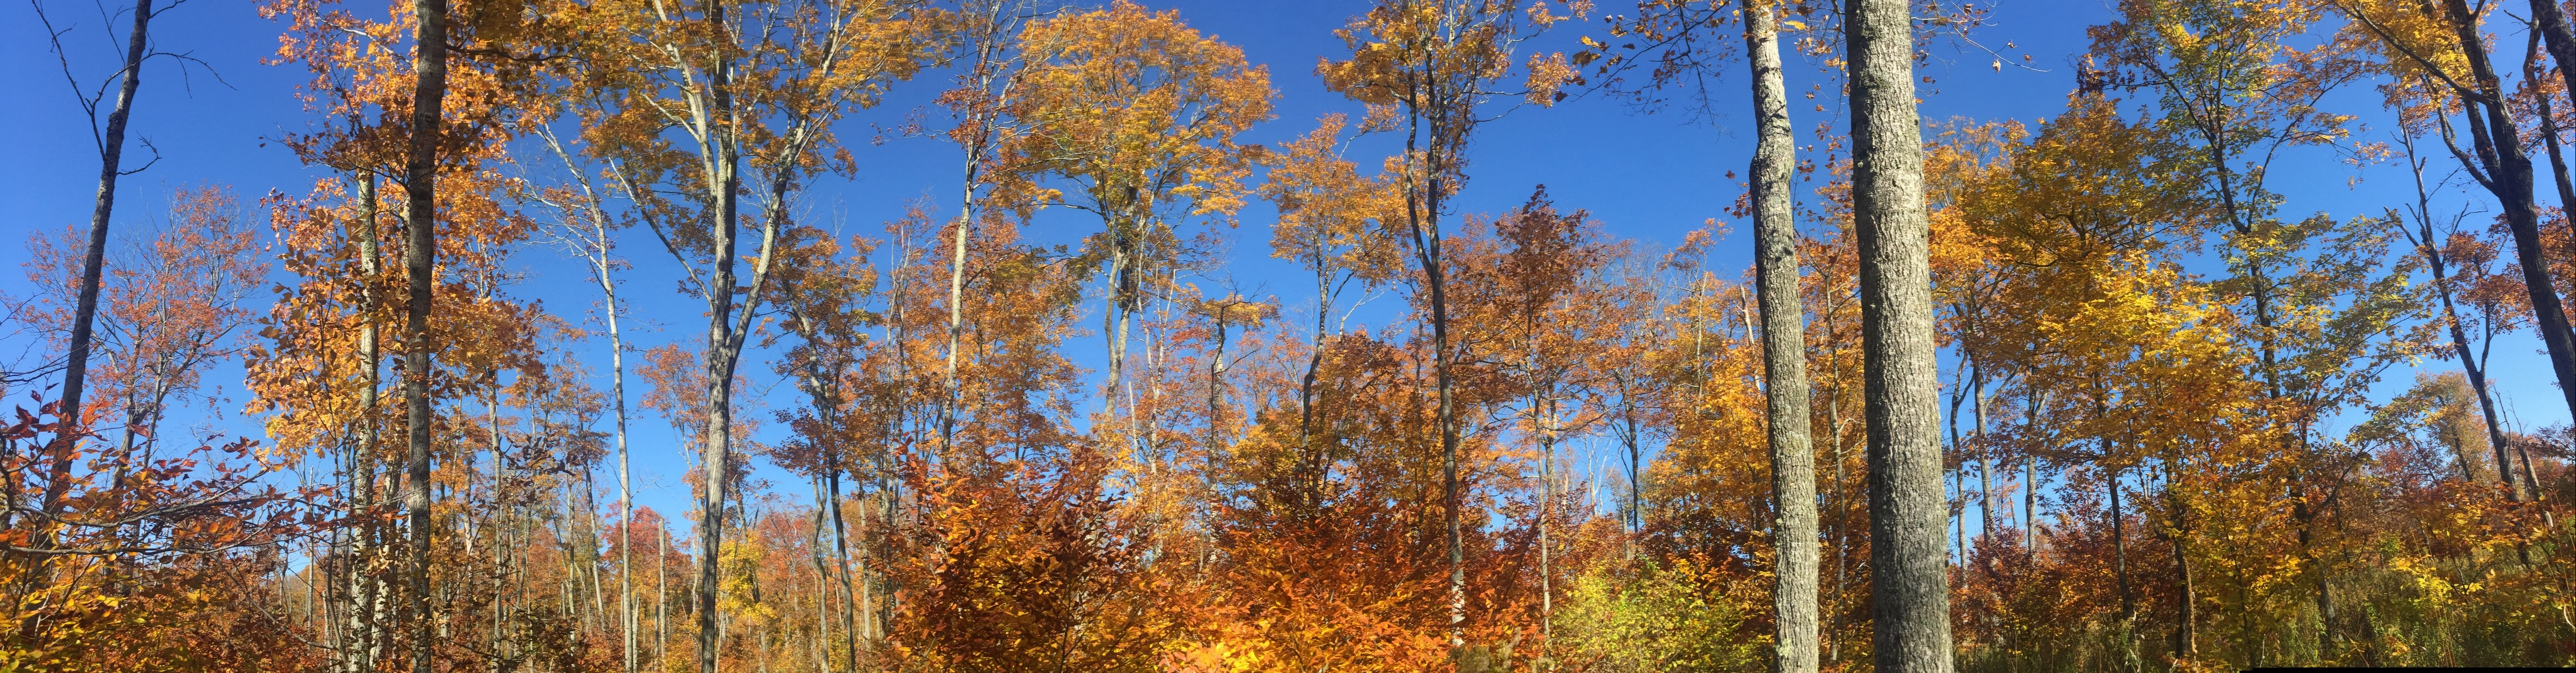 Fall Trees out in the Watershed